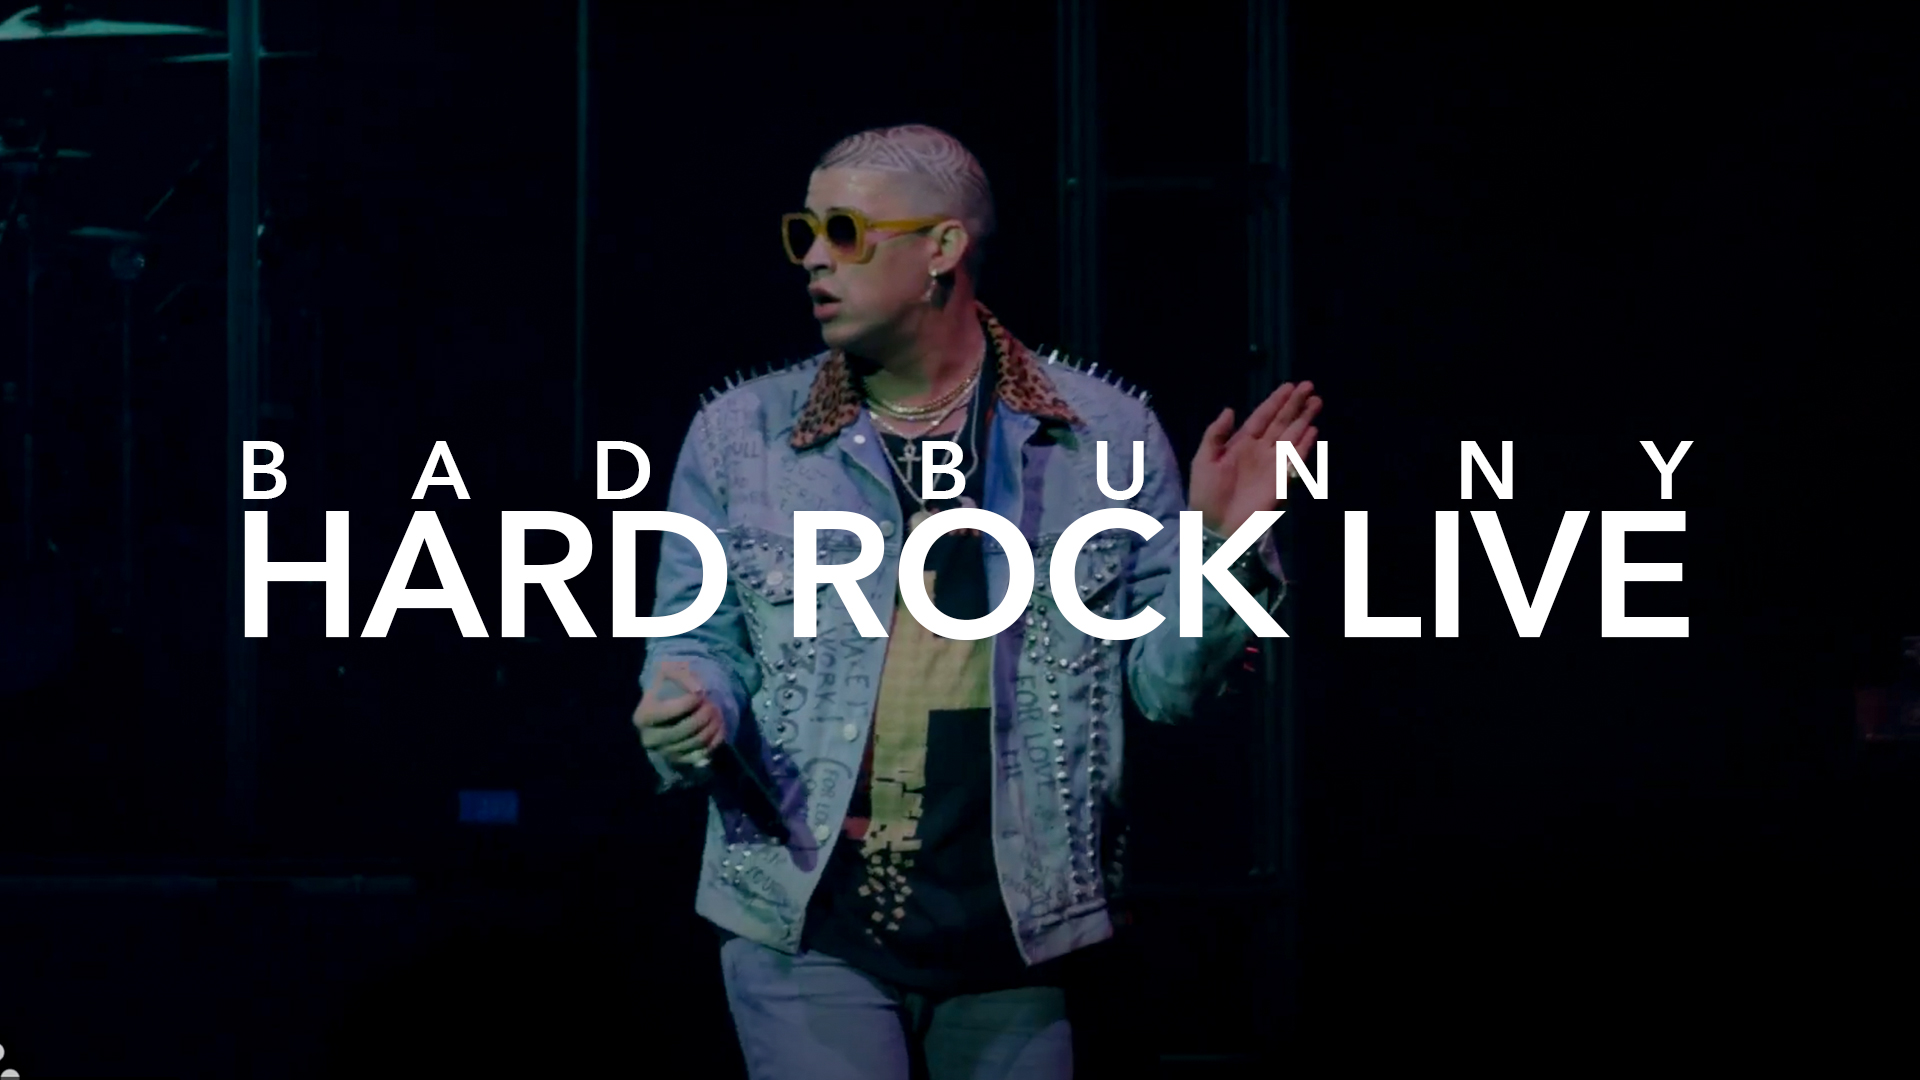 BAD BUNNY HARD ROCK LIVE